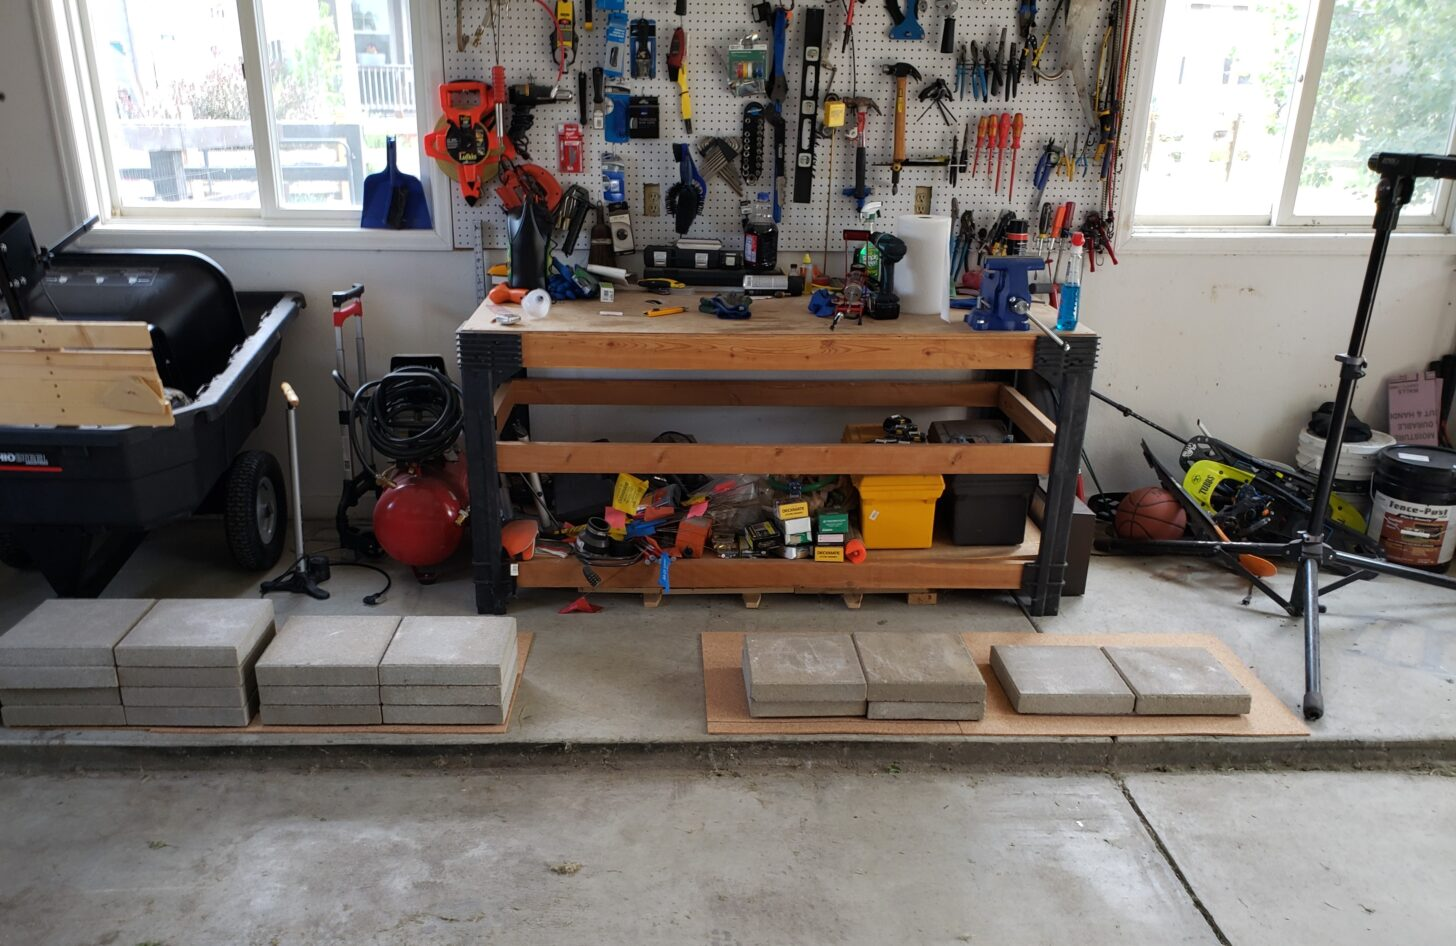 A tidy workshop featuring a rack wall of tools, a workbench, and - on the ground - a row of pavers in increasingly high stacks.